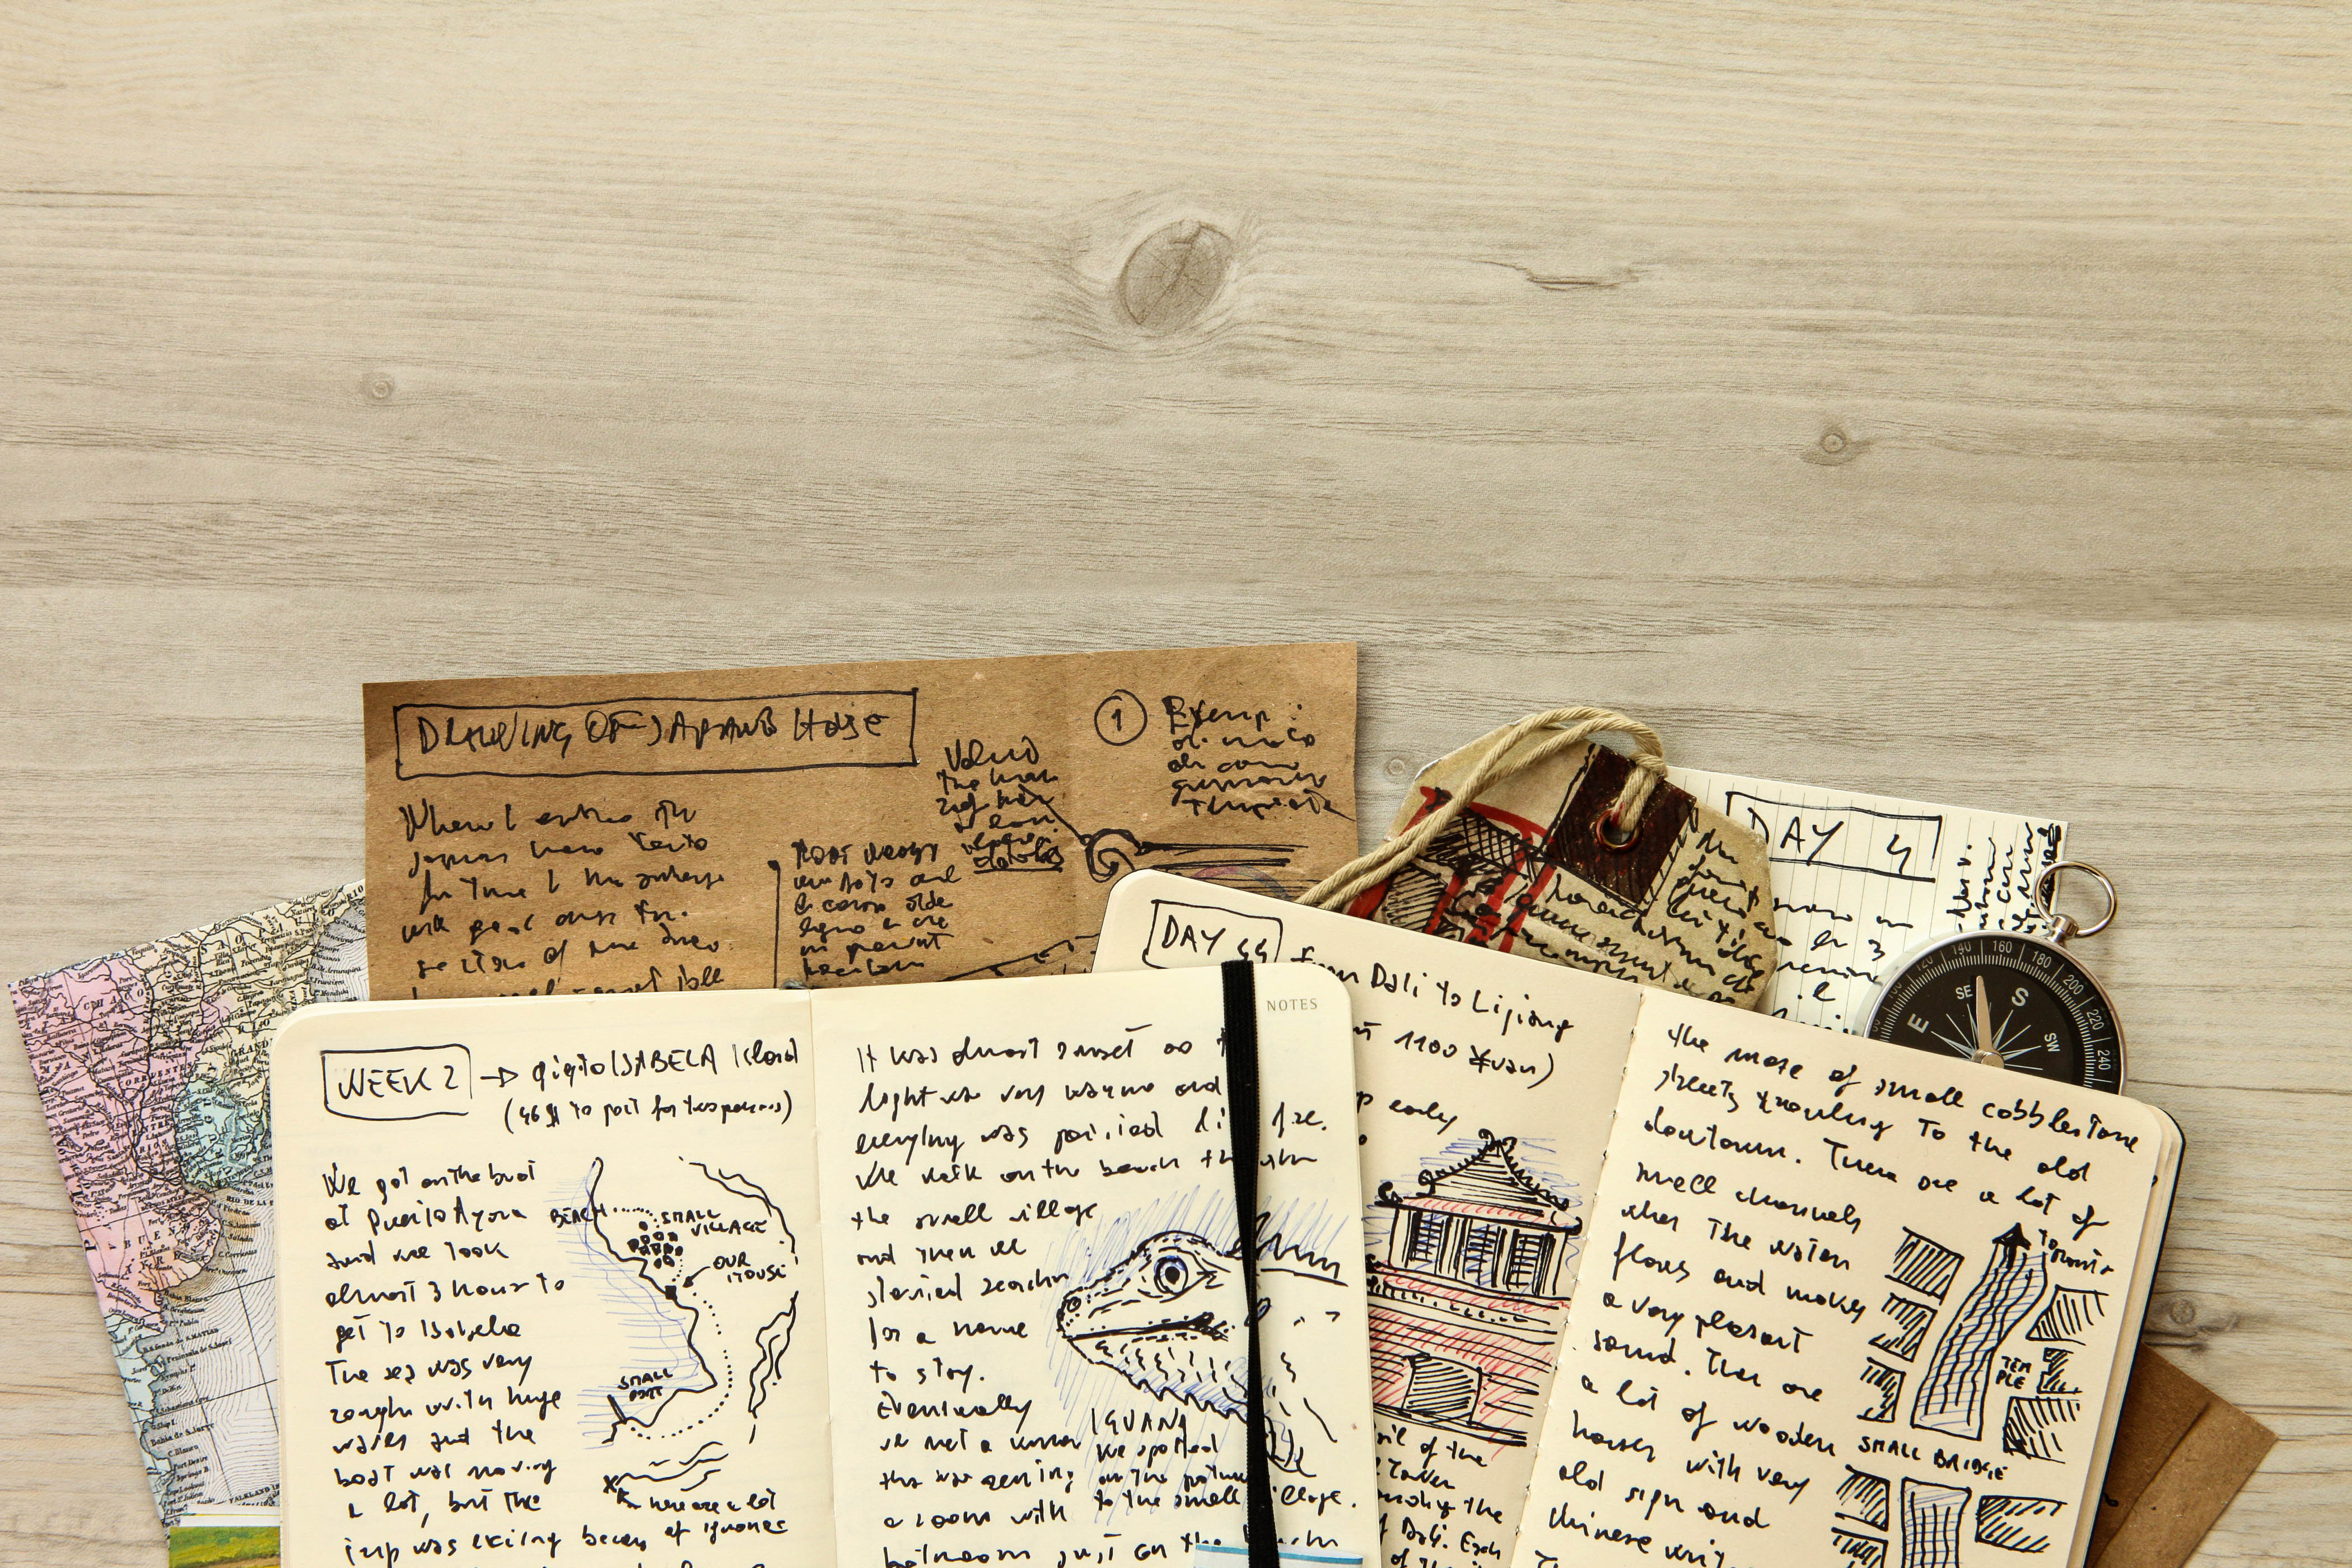 Handwritten travel diary and journal with drawings, reports and memories, stories about adventurous journeys with maps, directions and notes. Compass, tickets, tags and other travel items. On a wooden background with copy space on top side.